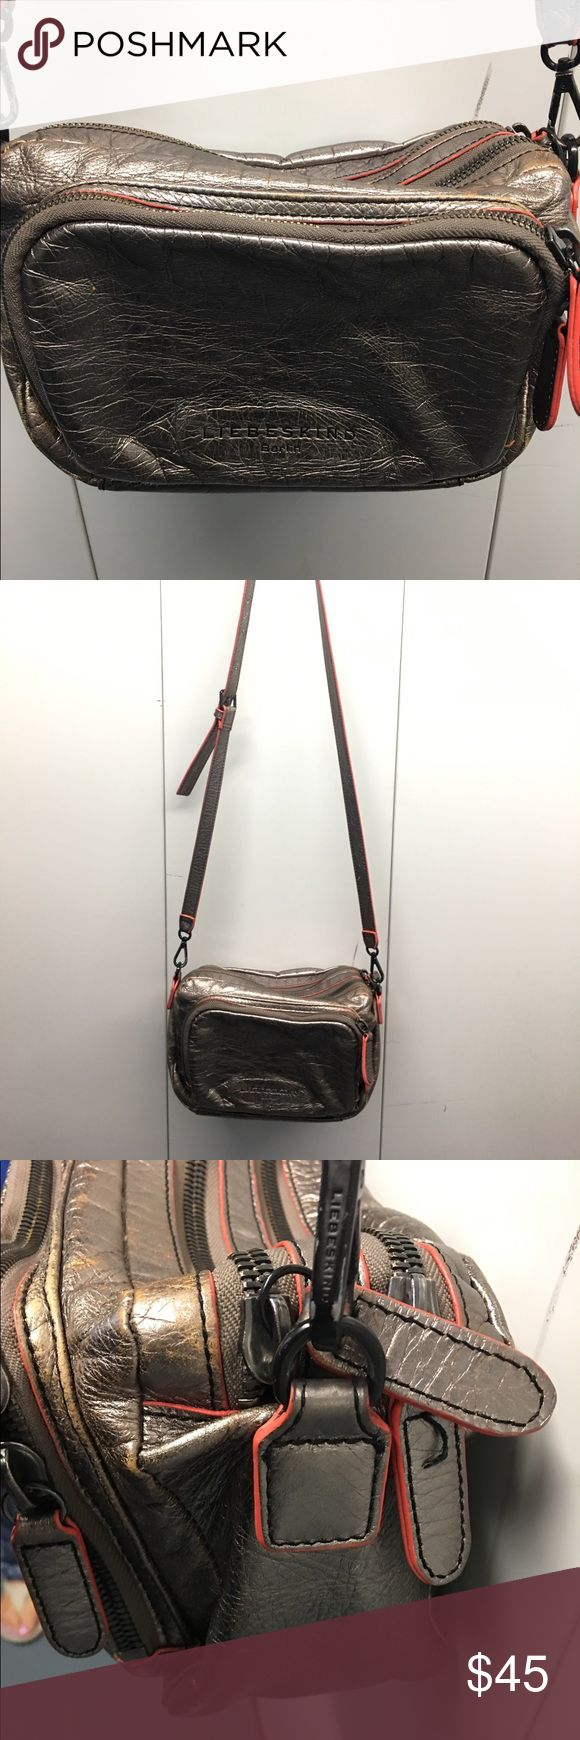 Liebskind metallic leather crossbody! Liebskind metallic leather crossbody bag! Used condition with lots of life left. Please message with any questions :) Liebeskind Bags Crossbody Bags